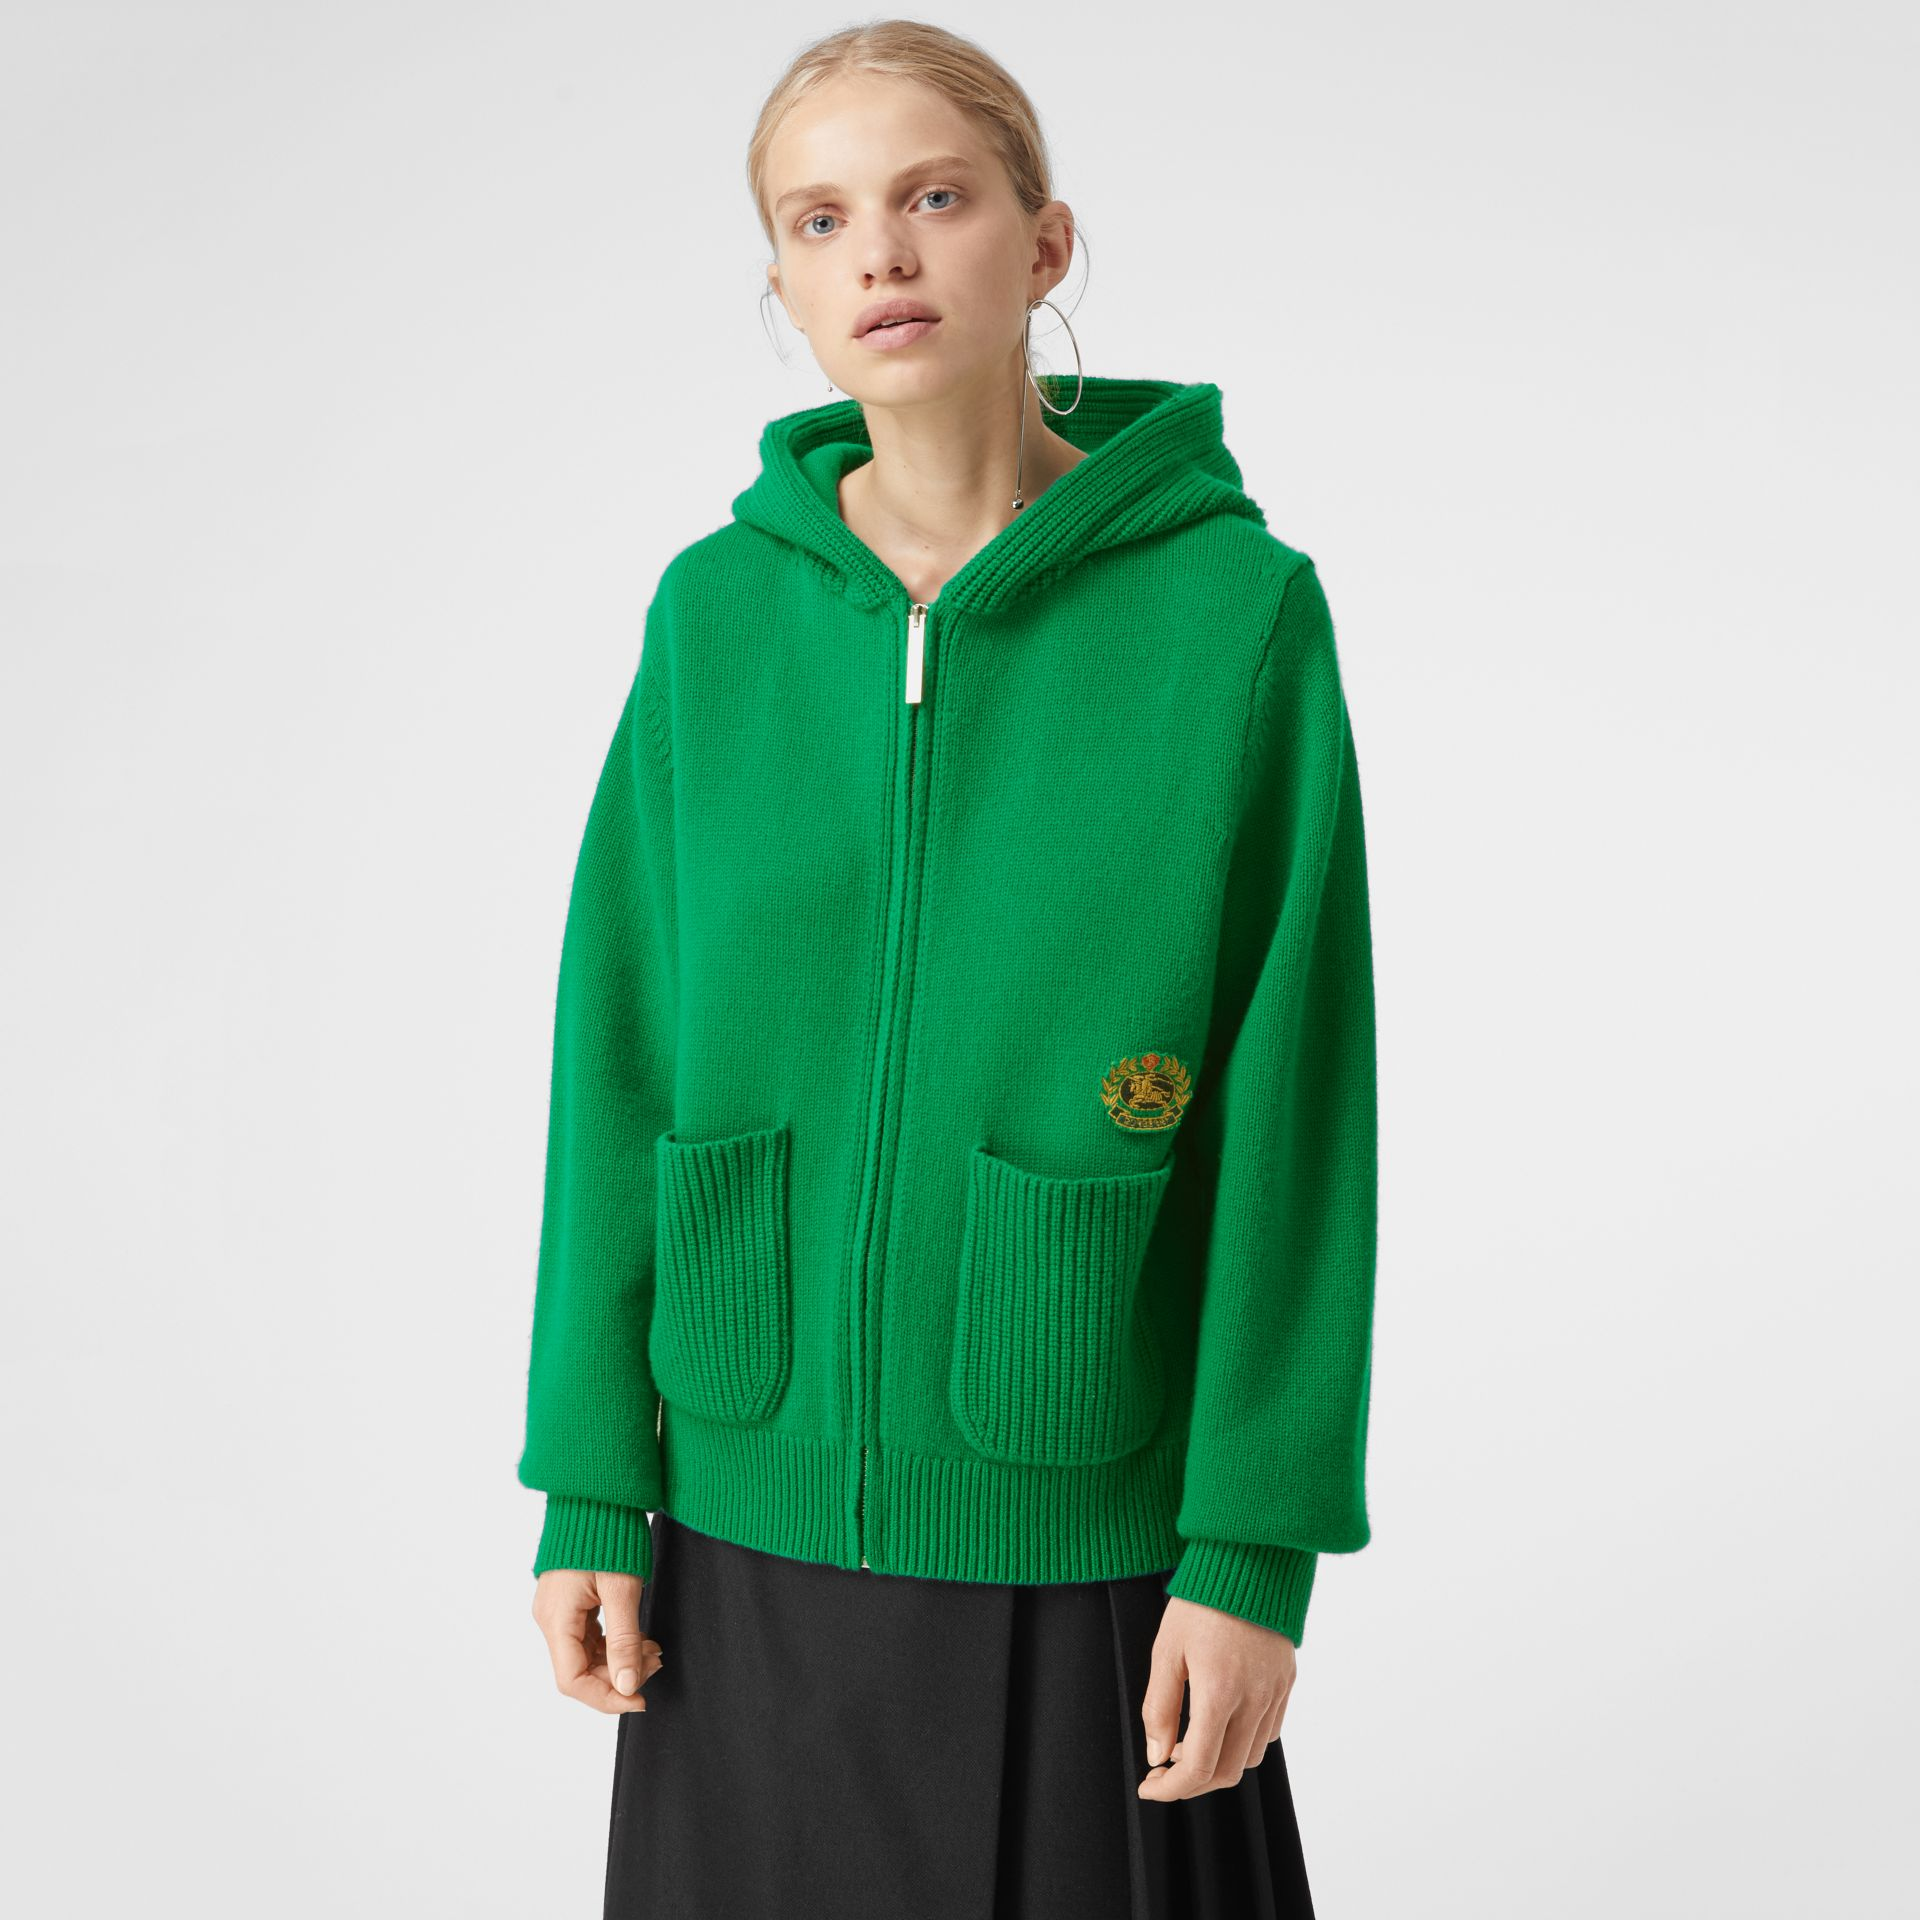 Embroidered Crest Cashmere Hooded Top in Vibrant Green - Women | Burberry Australia - gallery image 4